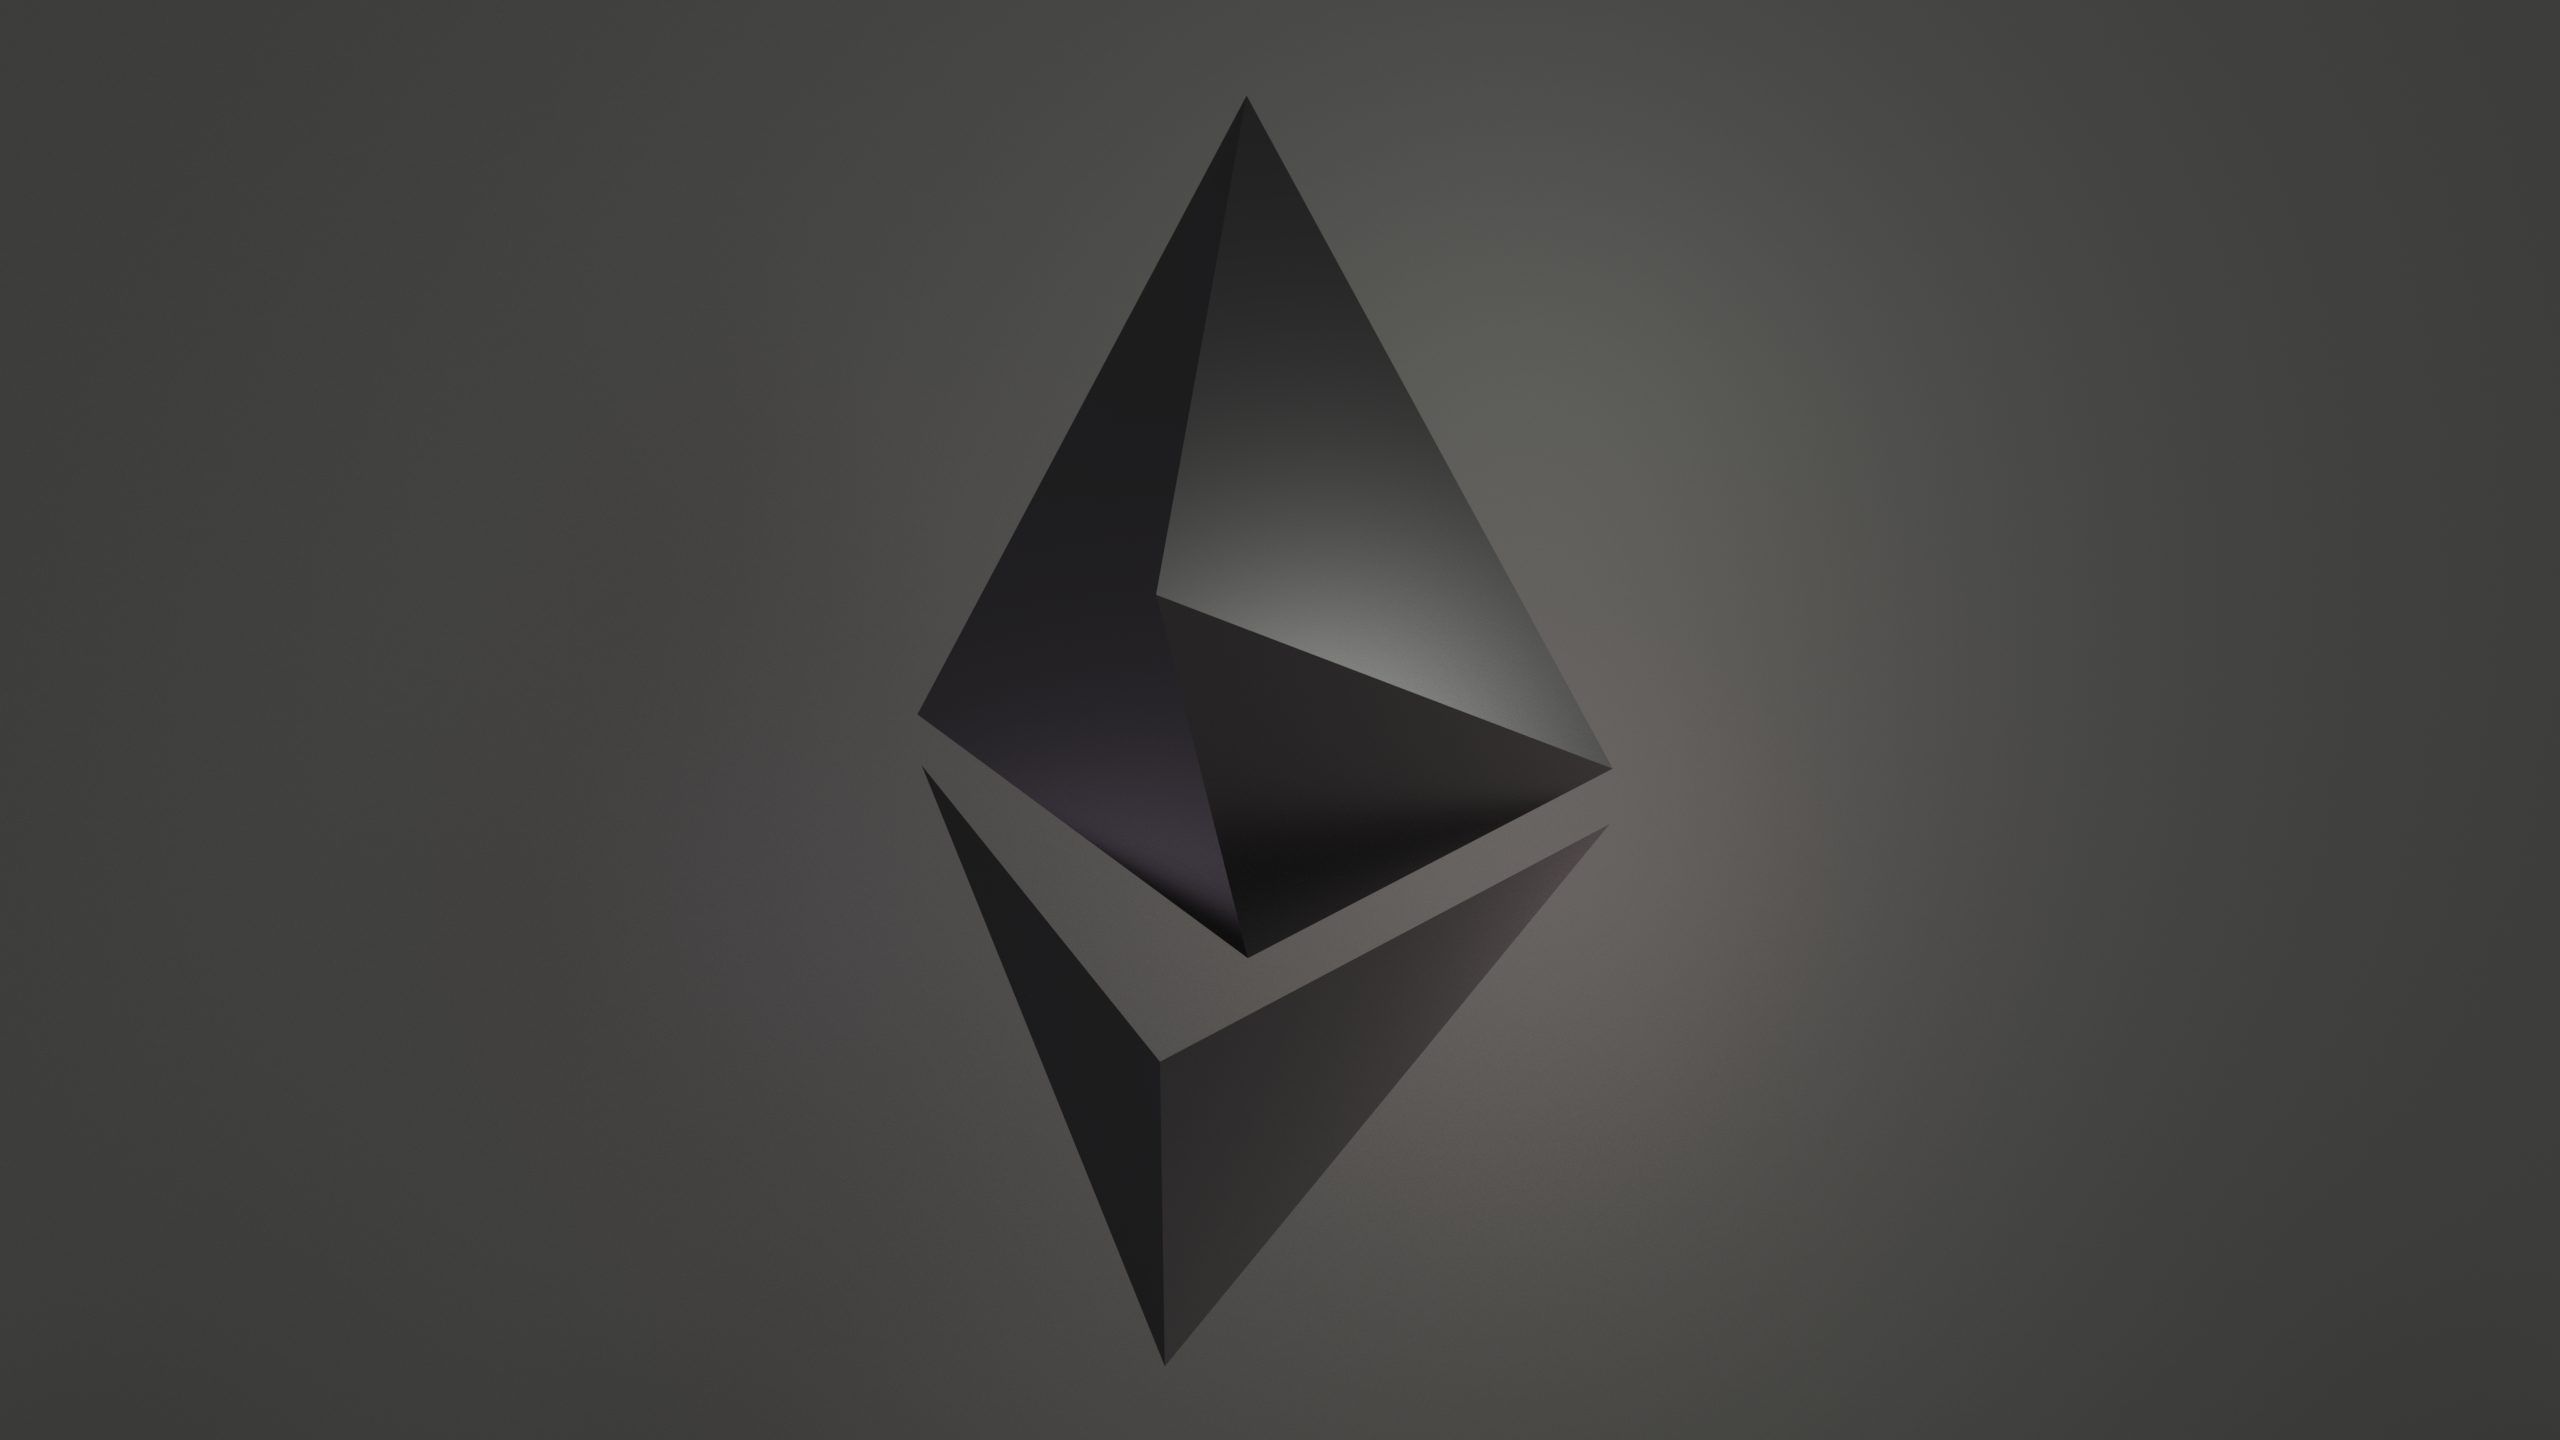 Wallpaper 5 using Blender   Todays Theme Ethereum Steemit 2560x1440